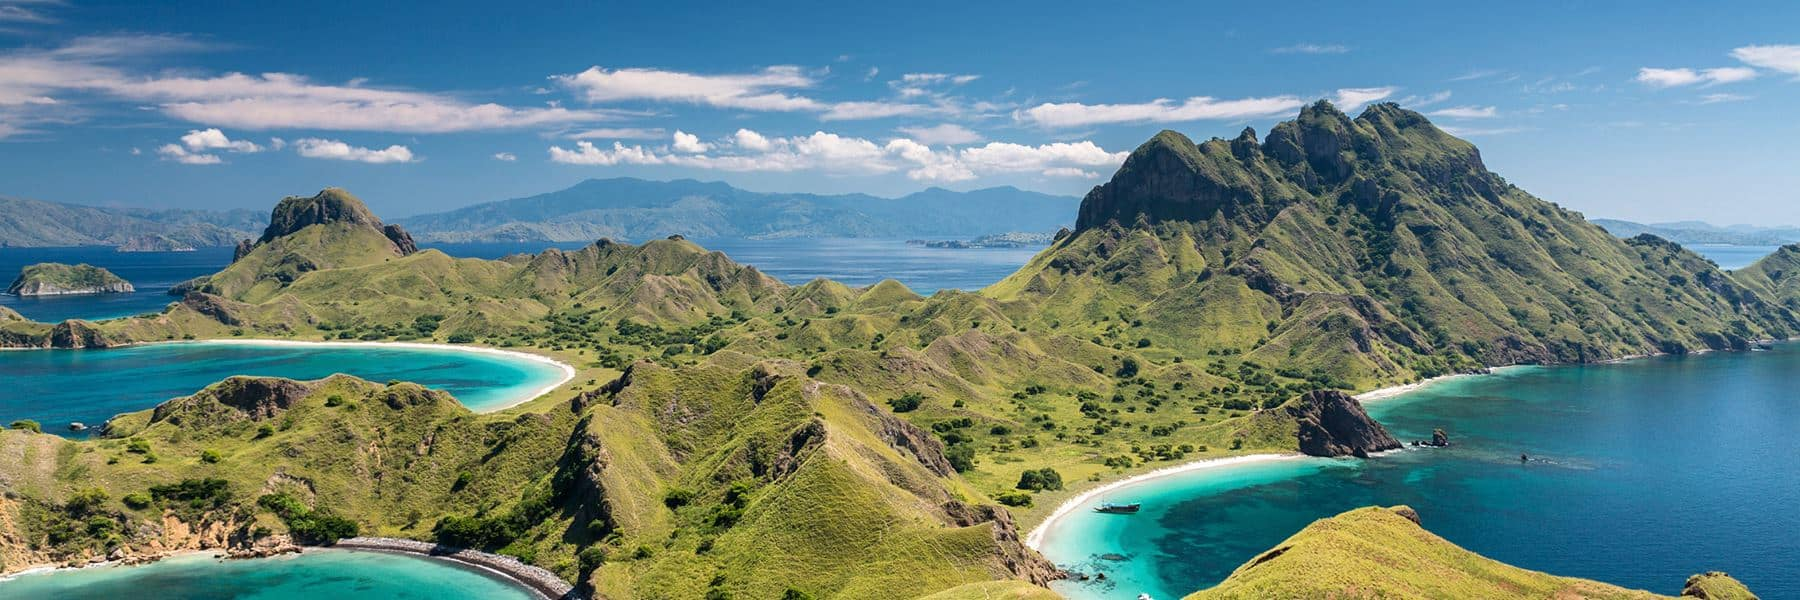 Komodo Island, Top 10 snorkeling spots, best snorkeling in the world, best snorkeling locations, beach travel, beach travel destinations, best snorkeling, snorkeling gear guide